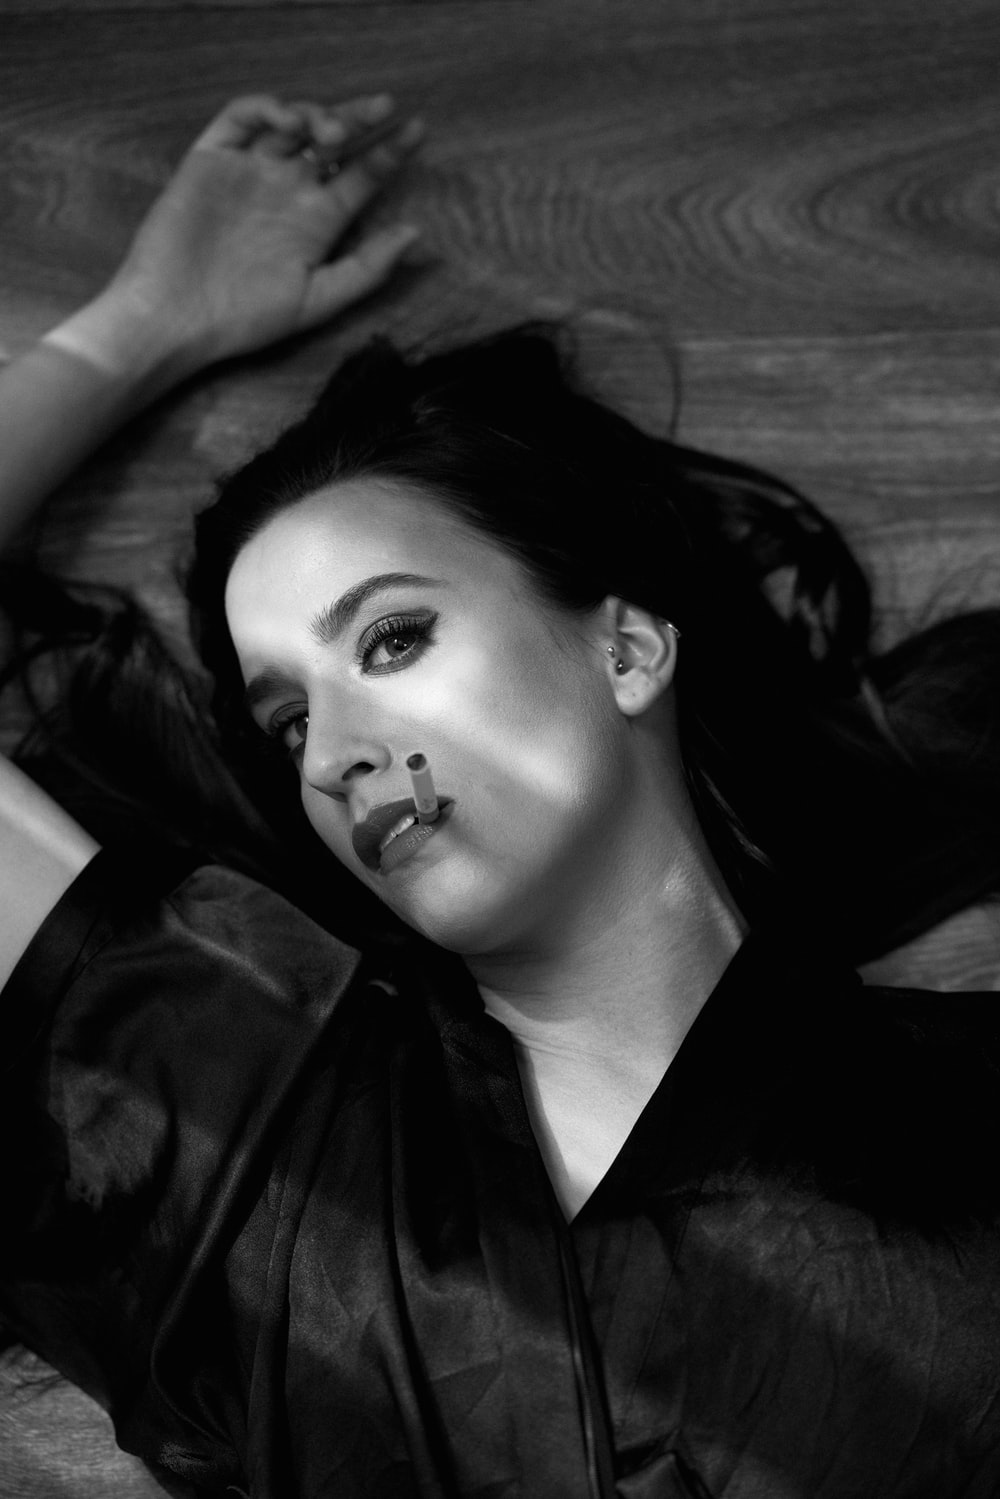 grayscale photography of woman lying on wooden surface